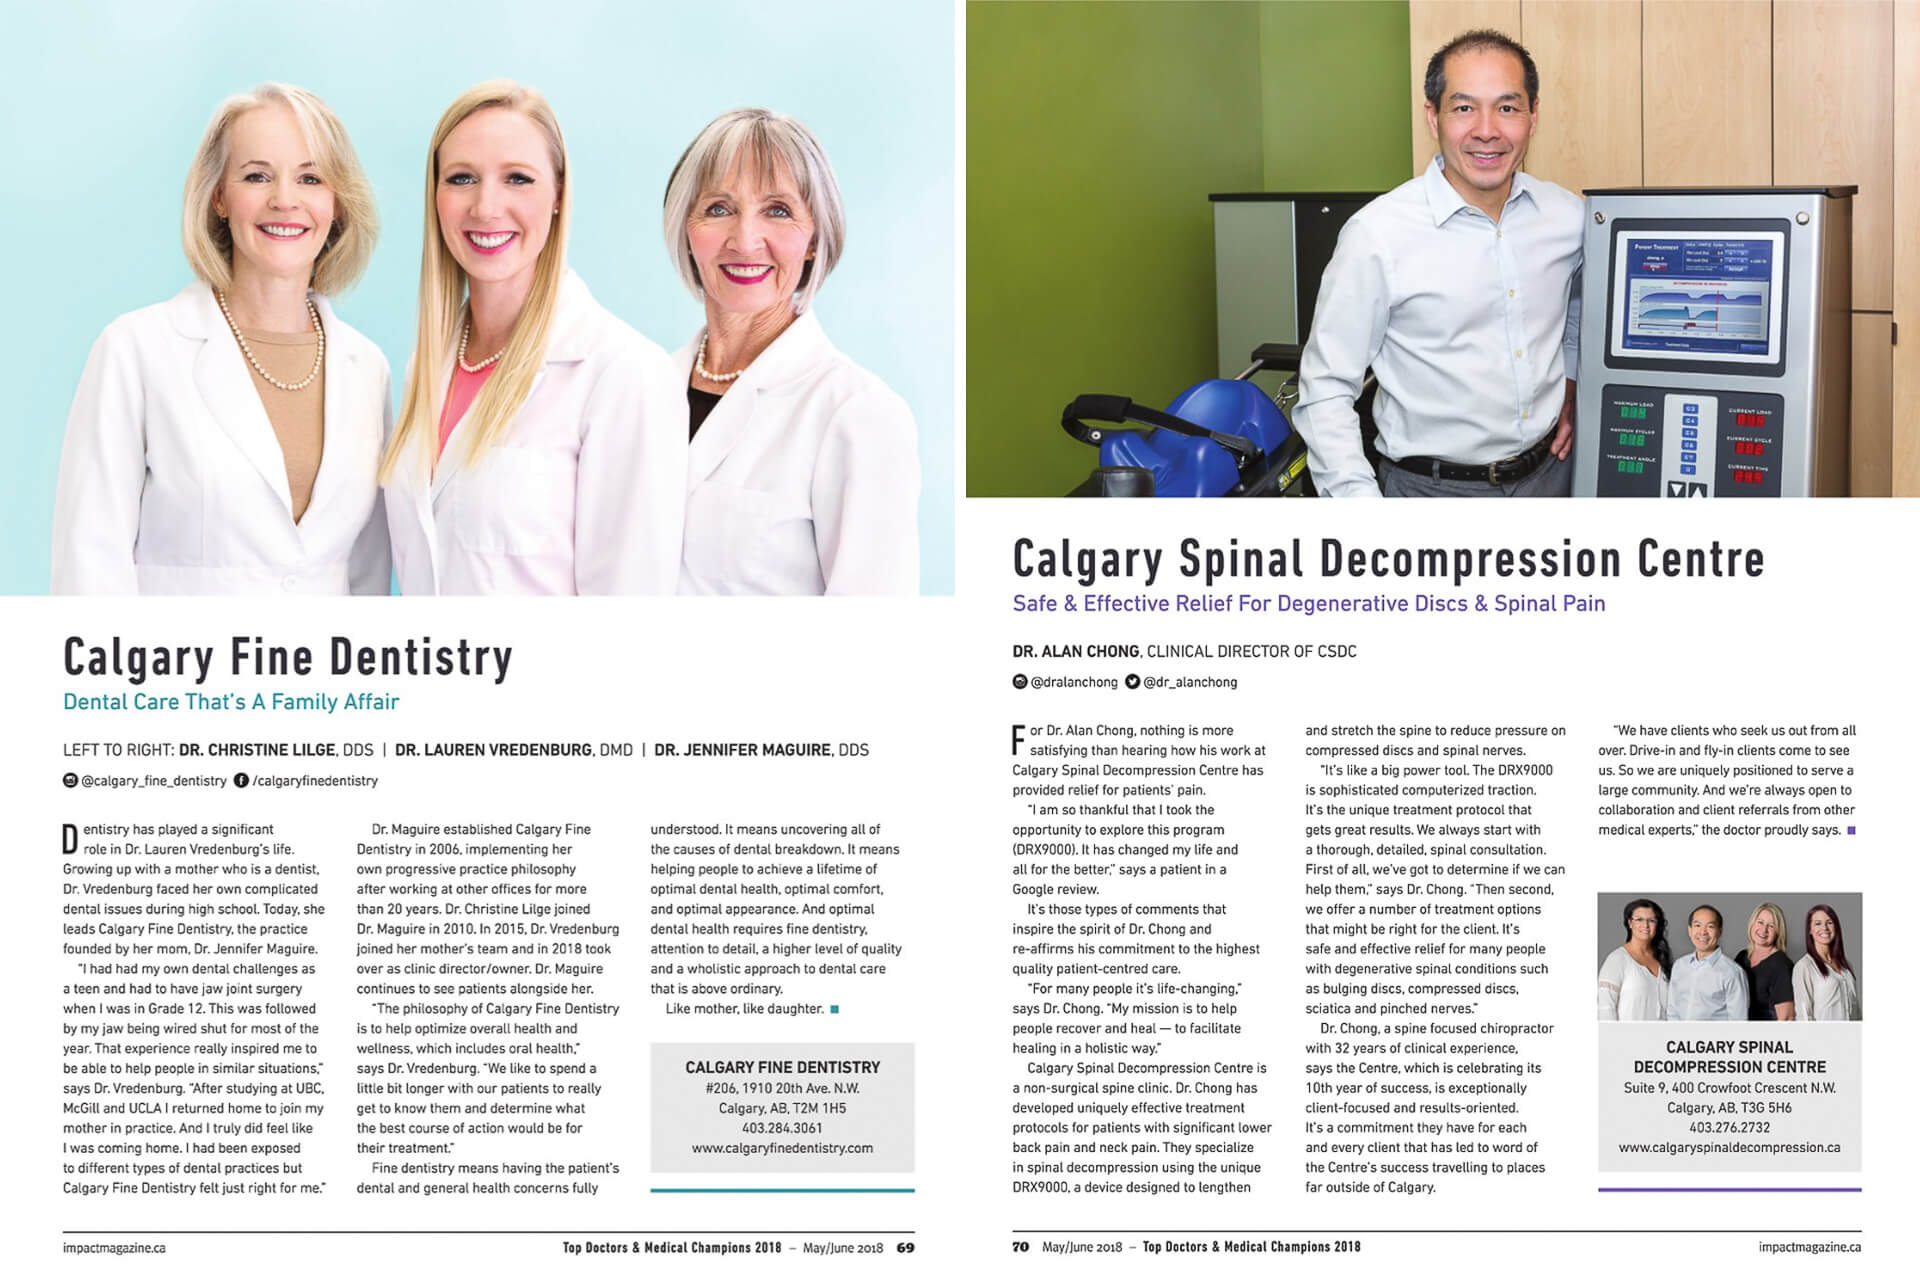 Headshots of three dentists and a chiropractor